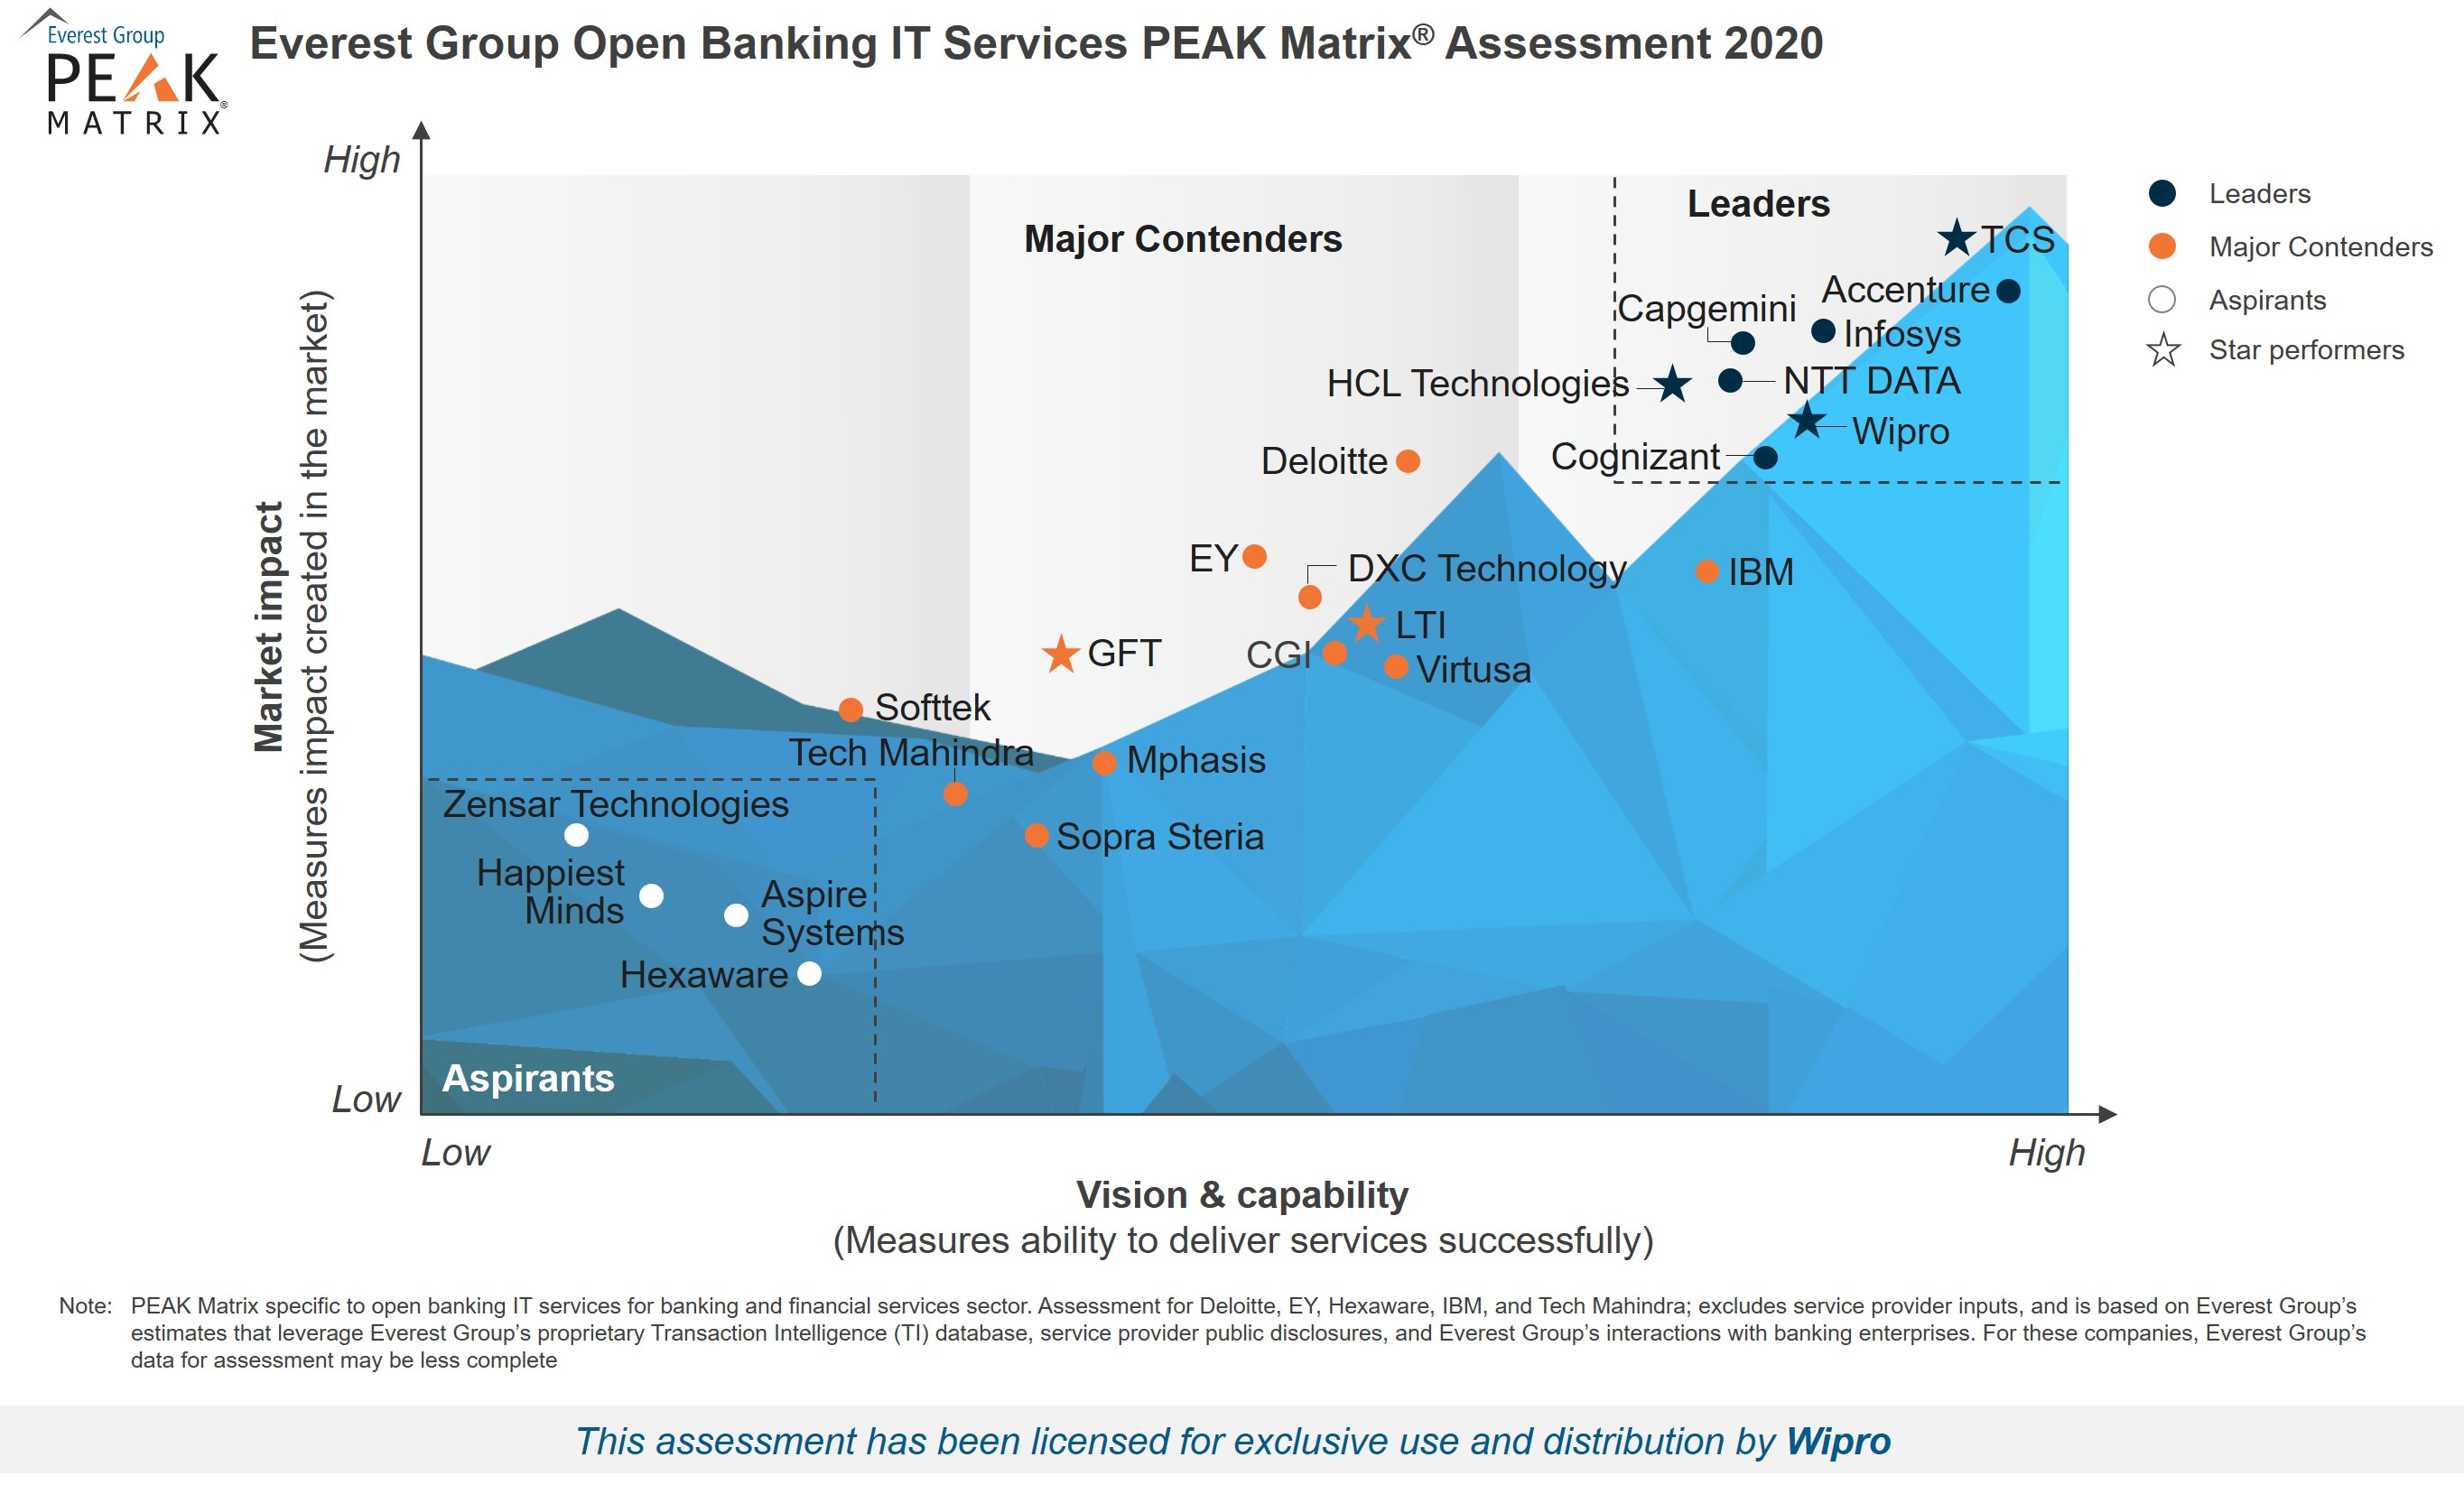 Wipro positioned as a Leader in Open Banking IT Services PEAK Matrix ® Assessment  2020